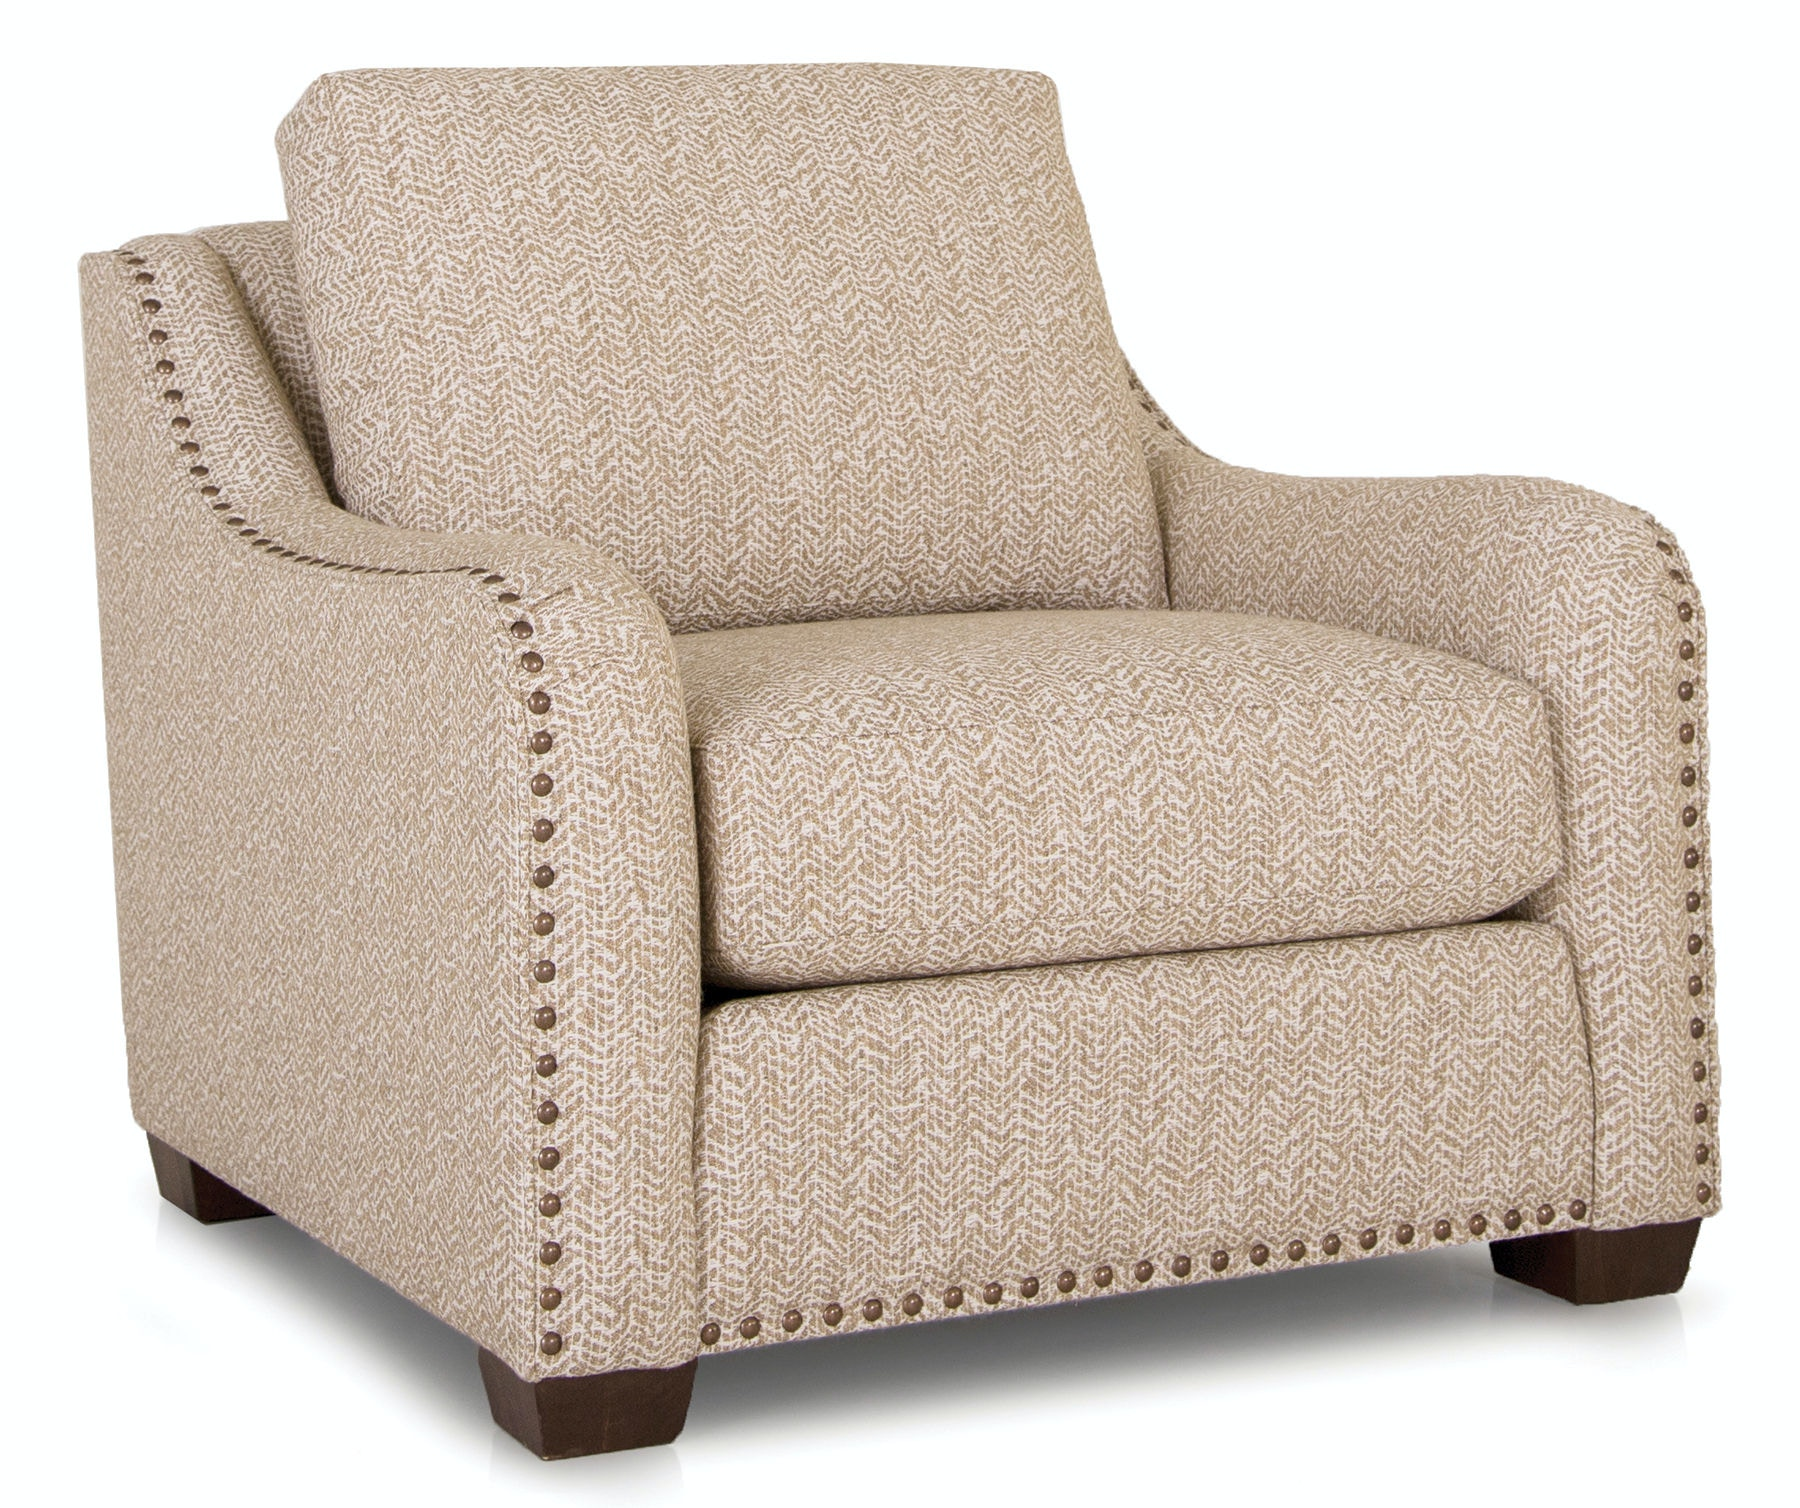 Smith Brothers 245 Chair SB245 30